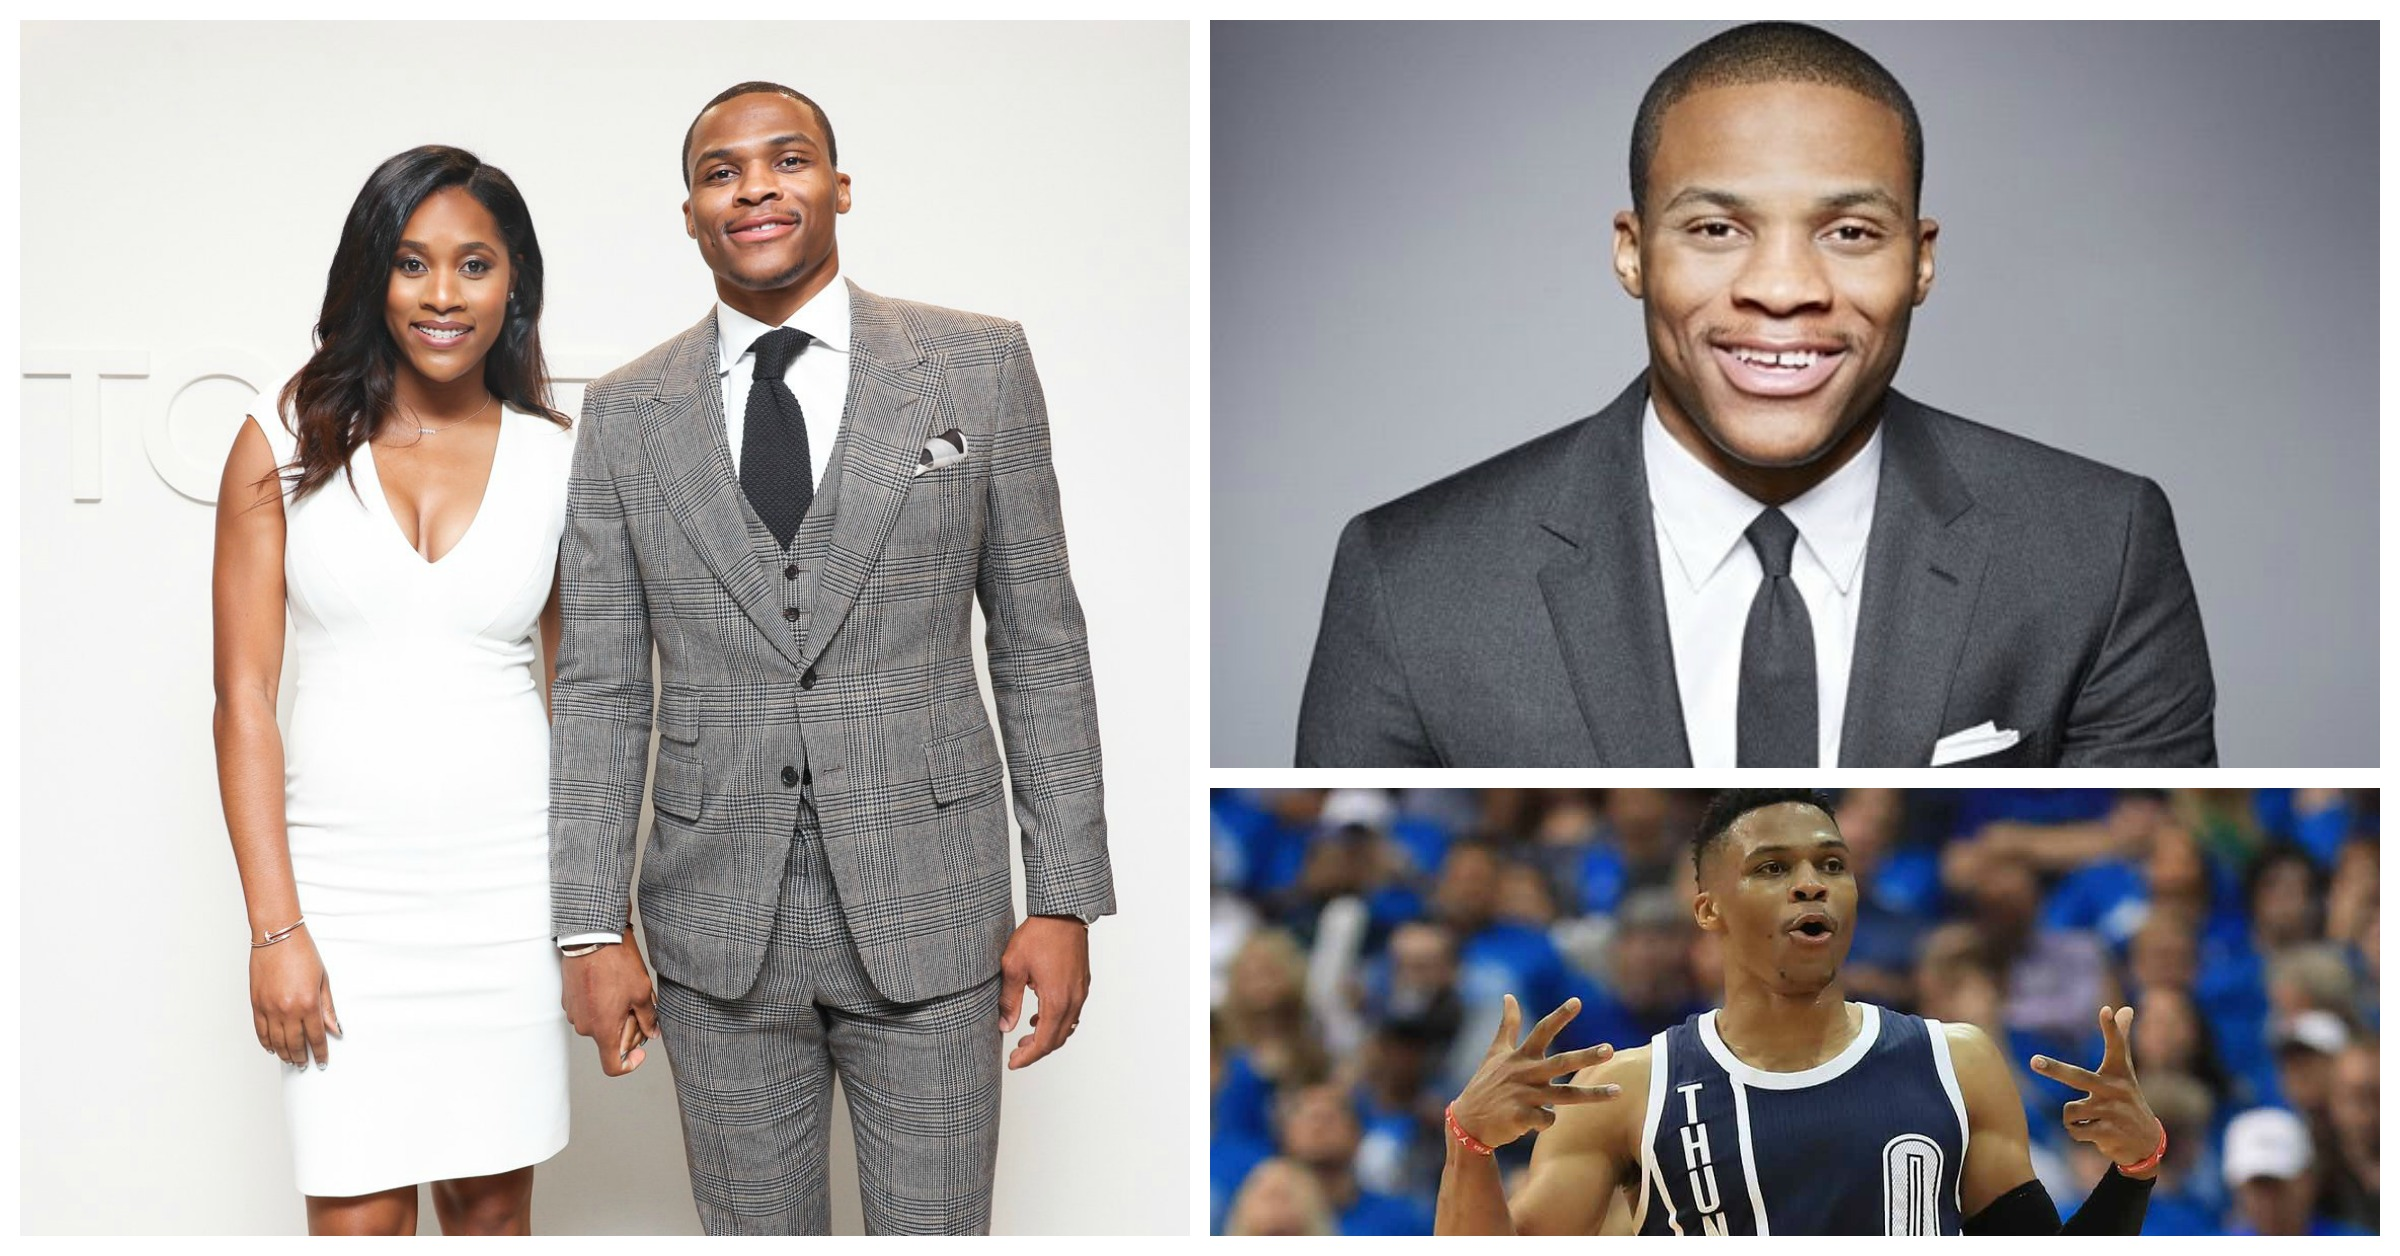 Russell Westbrook Gave A Heartfelt MVP Speech